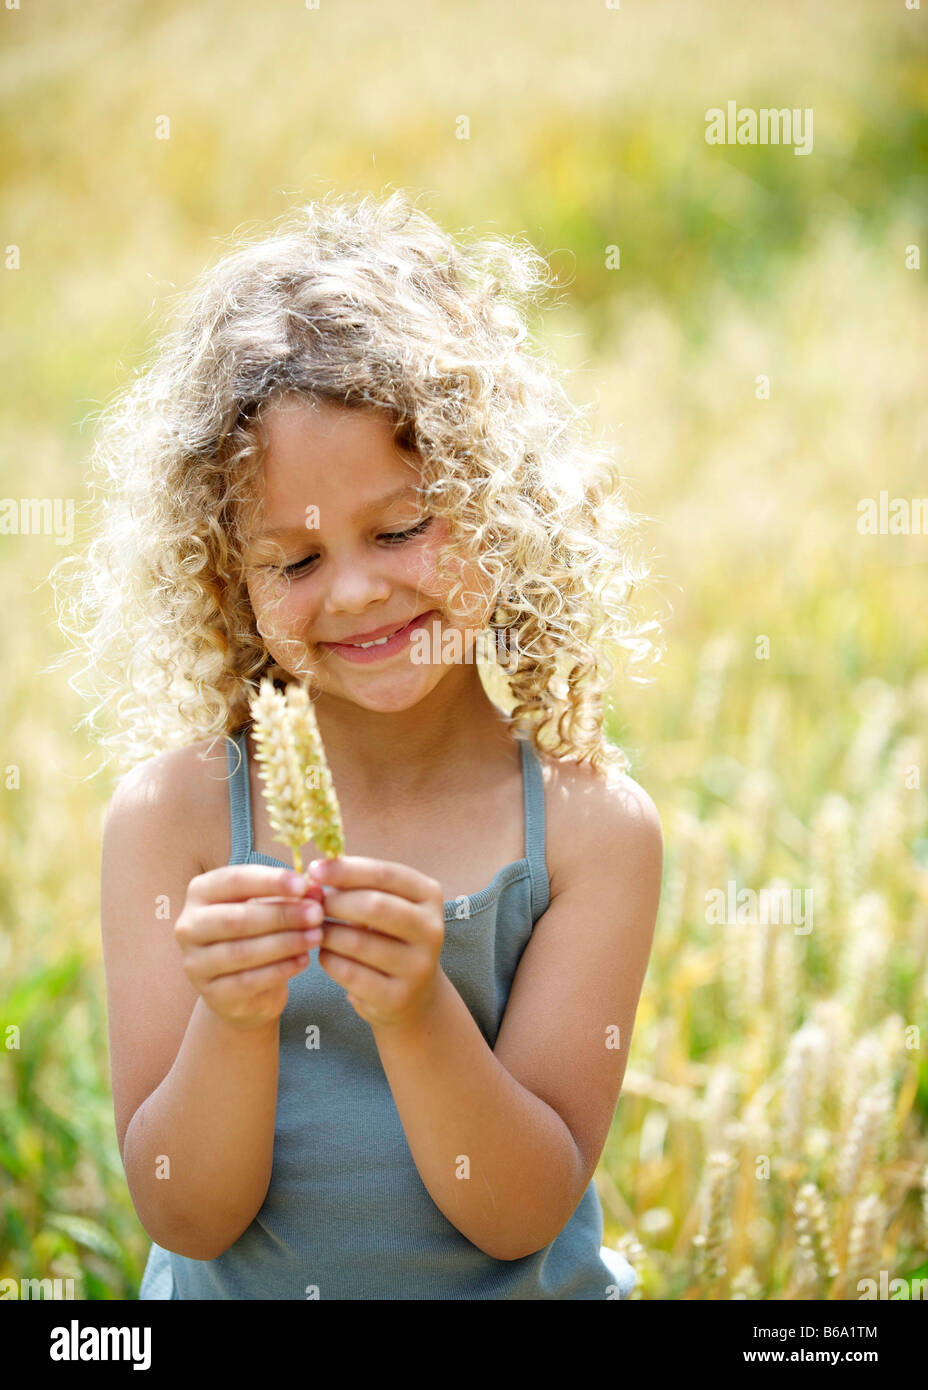 Young girl with ears of corn in field - Stock Image